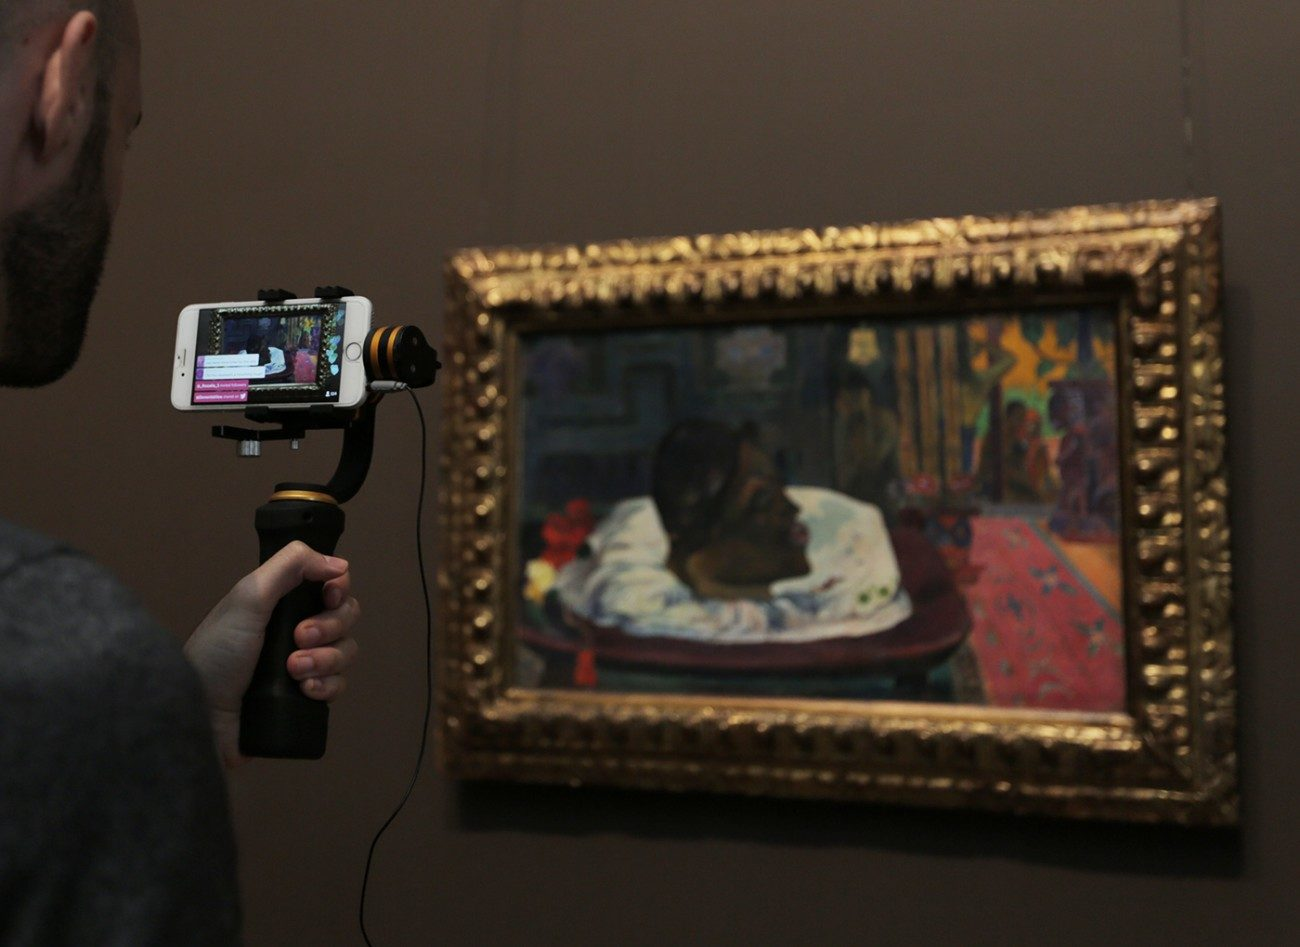 Using Live Video to Connect with Art and Each Other